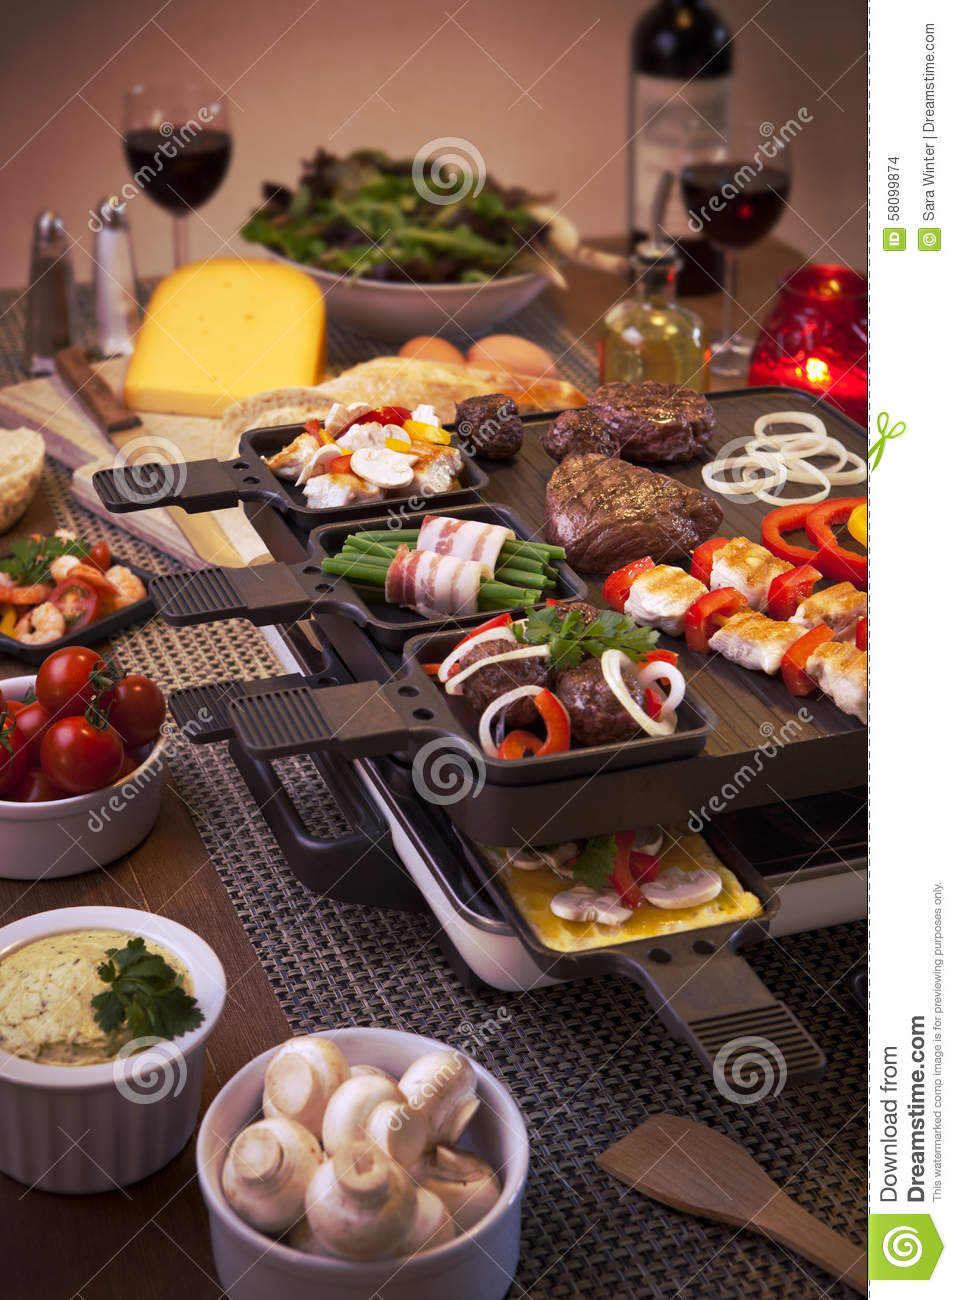 le gril de table de raclette ou les n erlandais gourmetten photo stock image 58099874. Black Bedroom Furniture Sets. Home Design Ideas